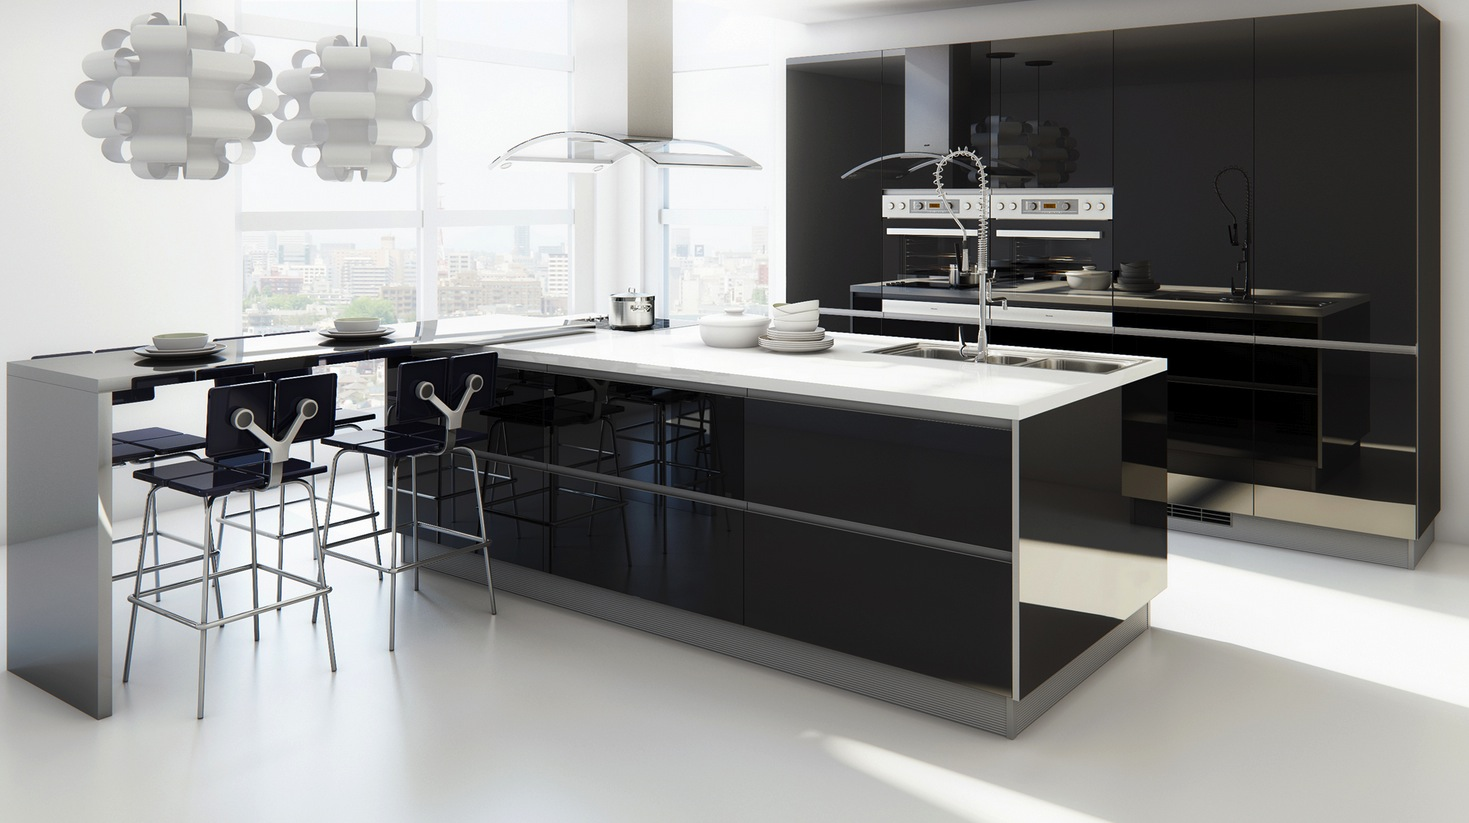 TAKE YOUR KITCHEN TO NEXT LEVEL WITH THESE 28 MODERN KITCHEN DESIGNS.....   Godfather Style